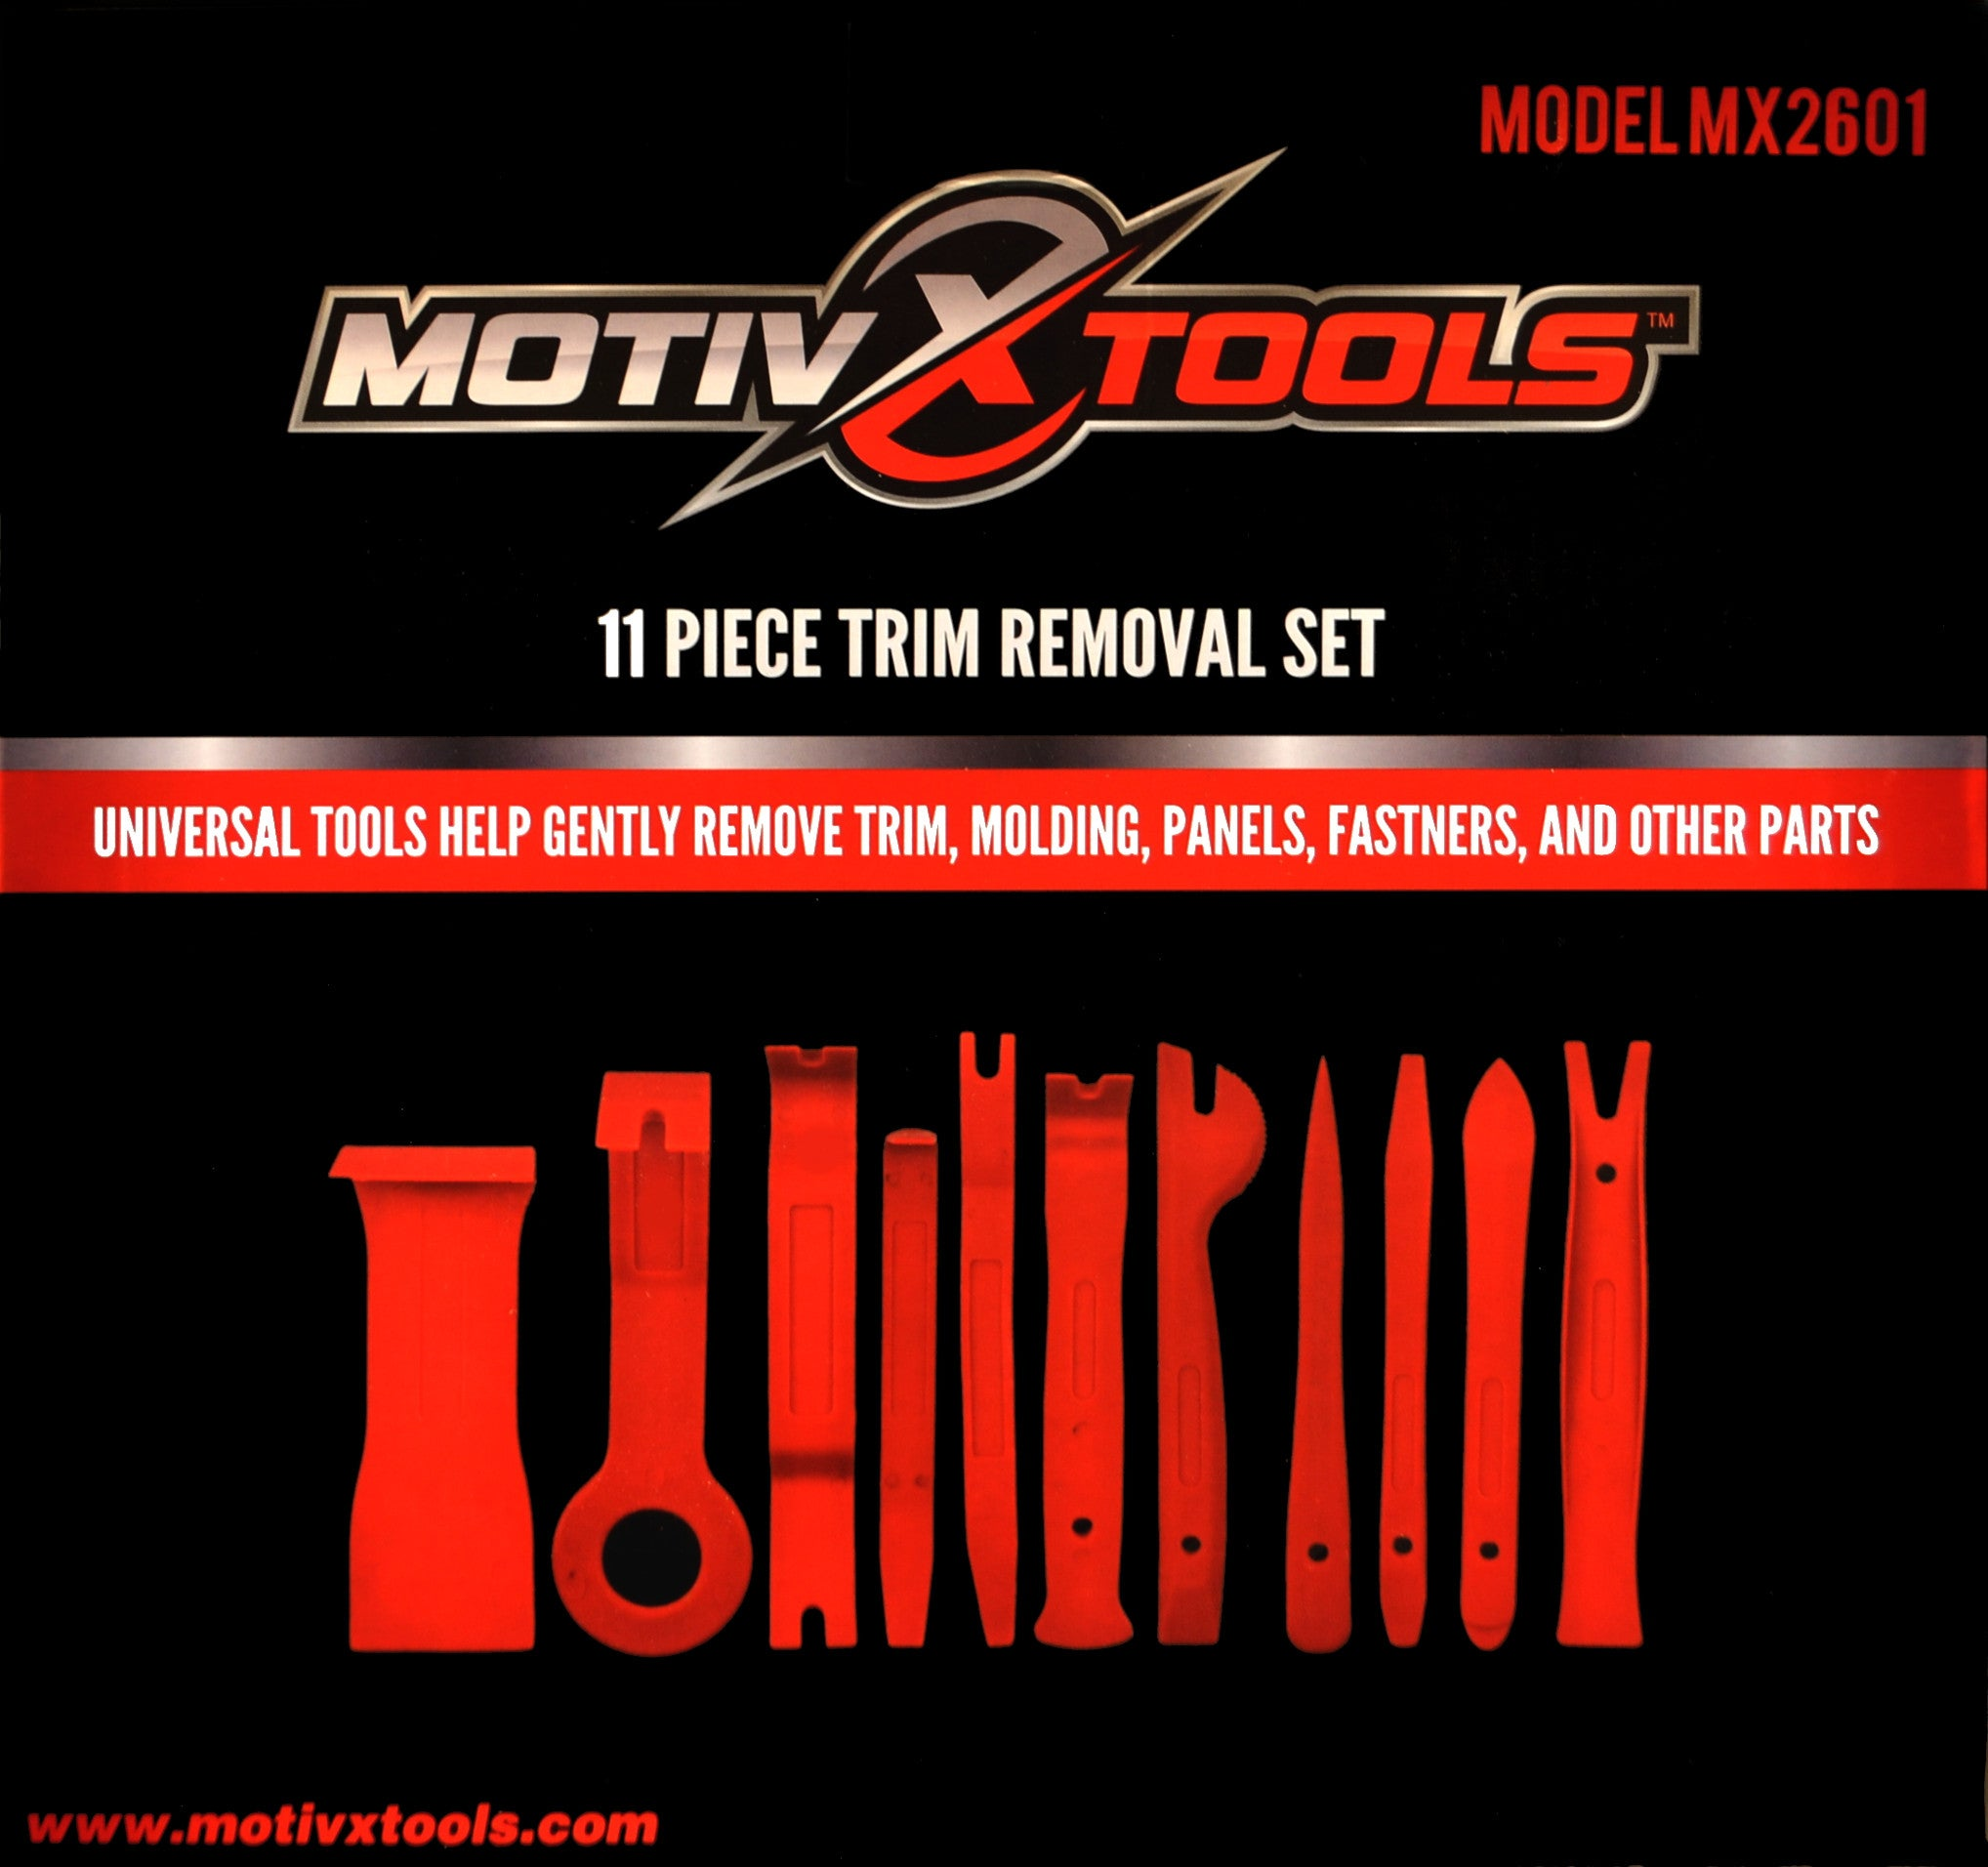 MX2601 Trim and Panel Removal Set Packaging